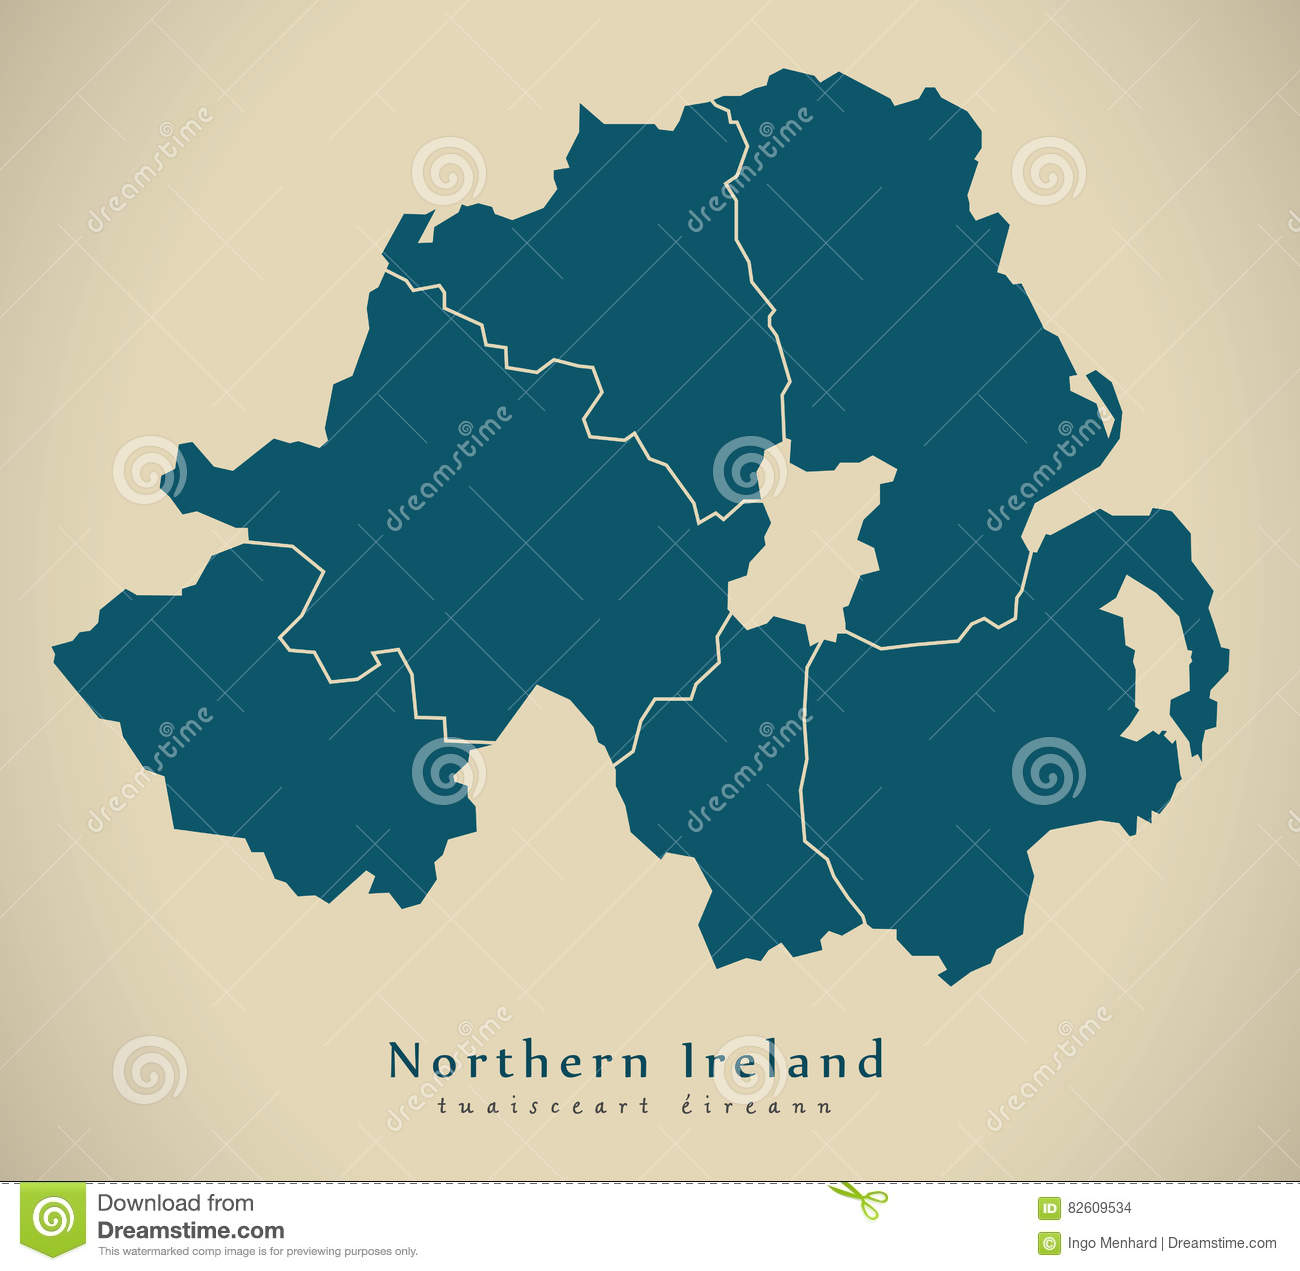 Map Of Ireland And Counties.Modern Map Northern Ireland With Counties Uk Stock Illustration